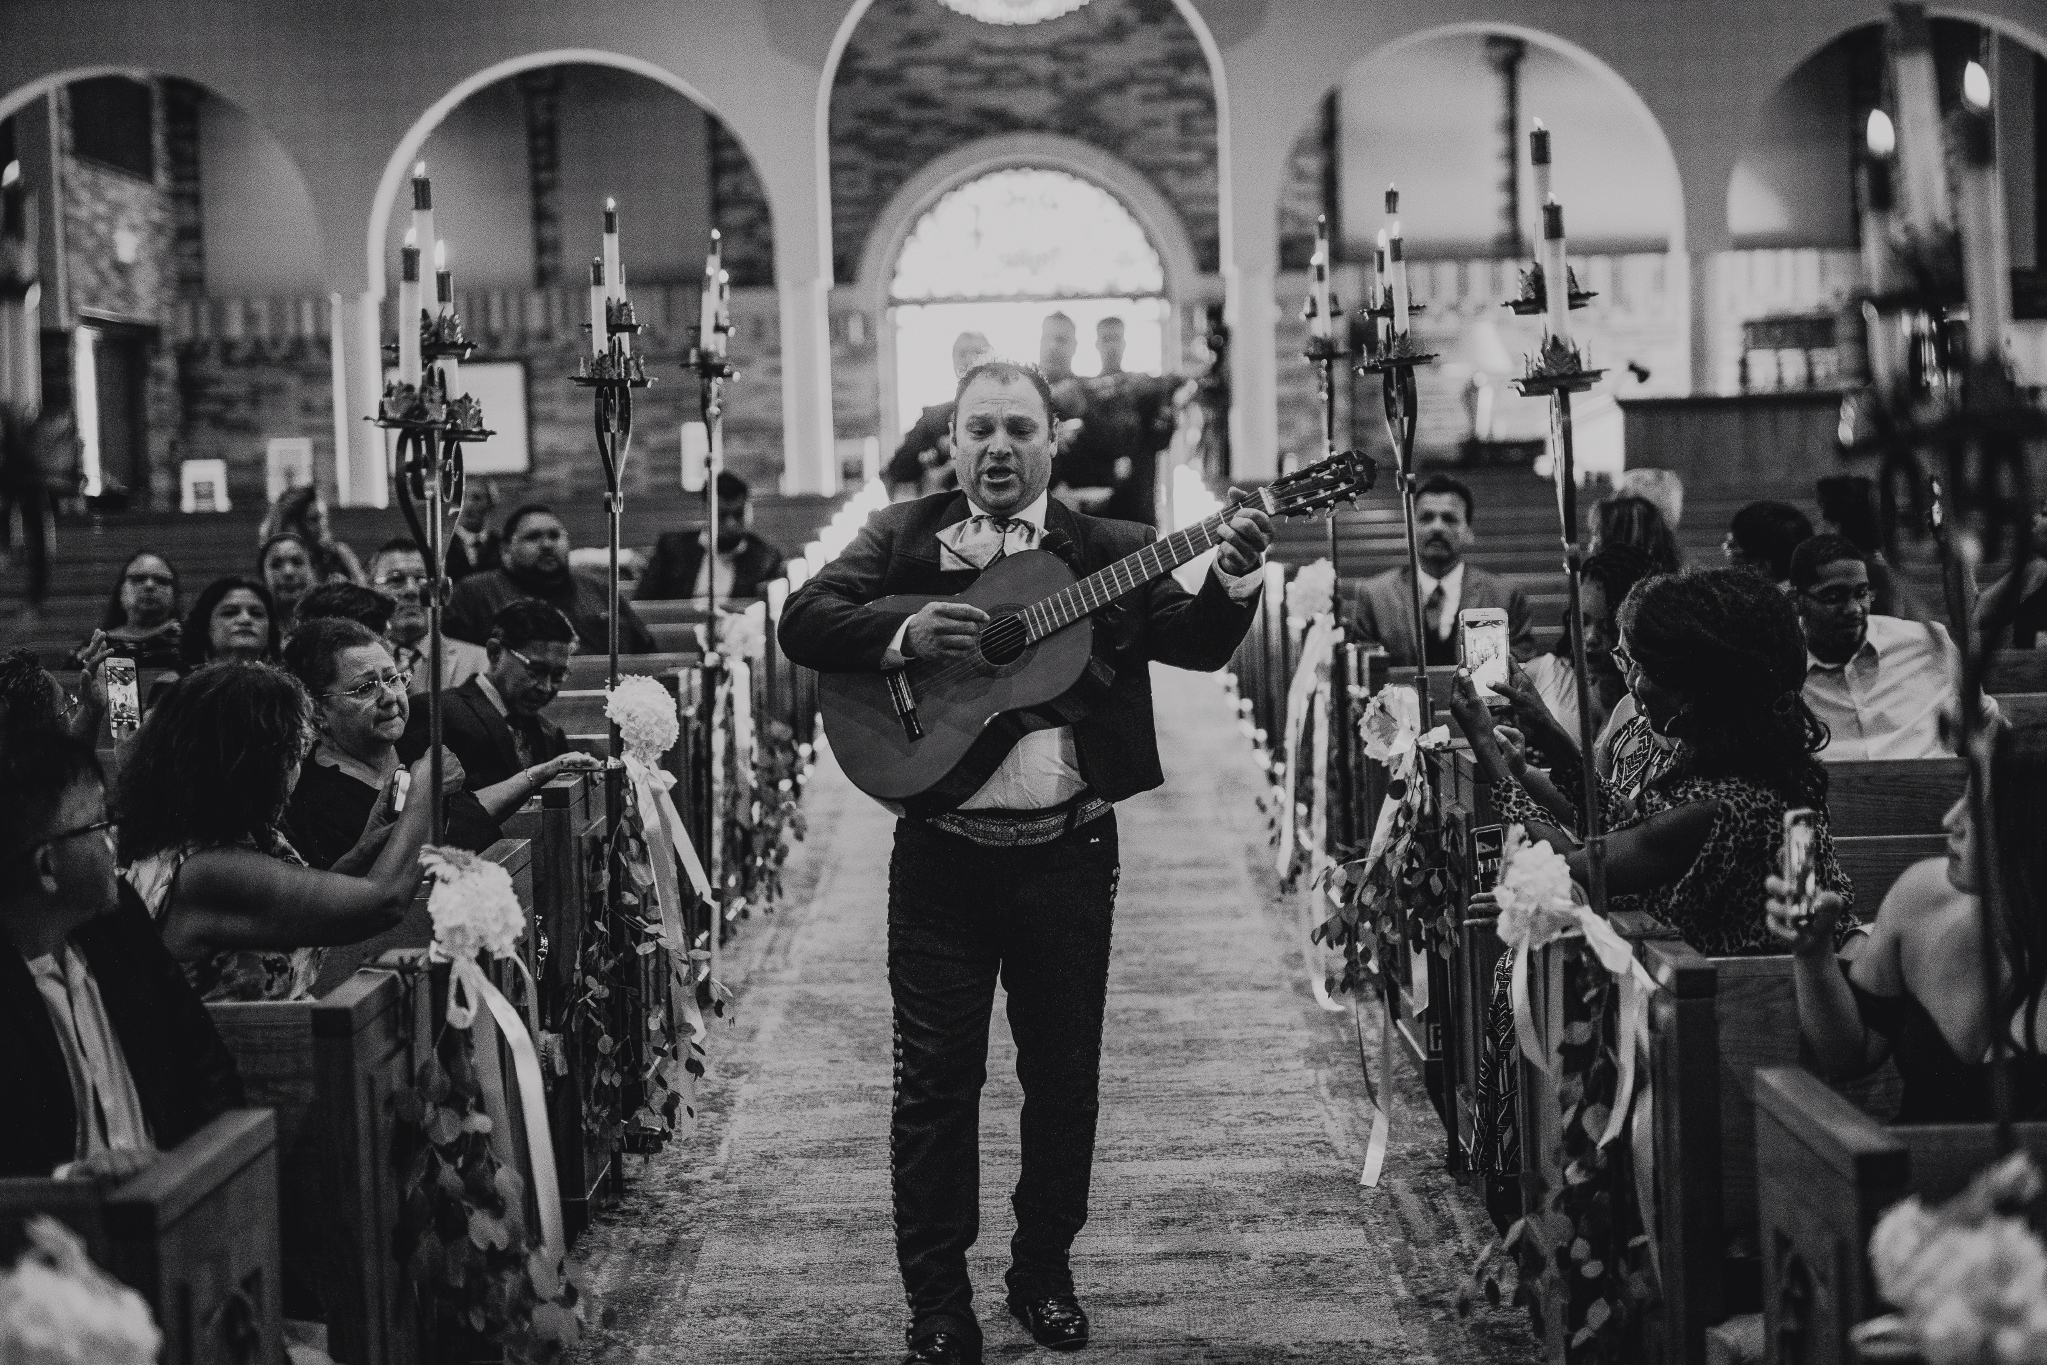 San Diego Wedding Photographer | Mariachi band playing at the wedding ceremony